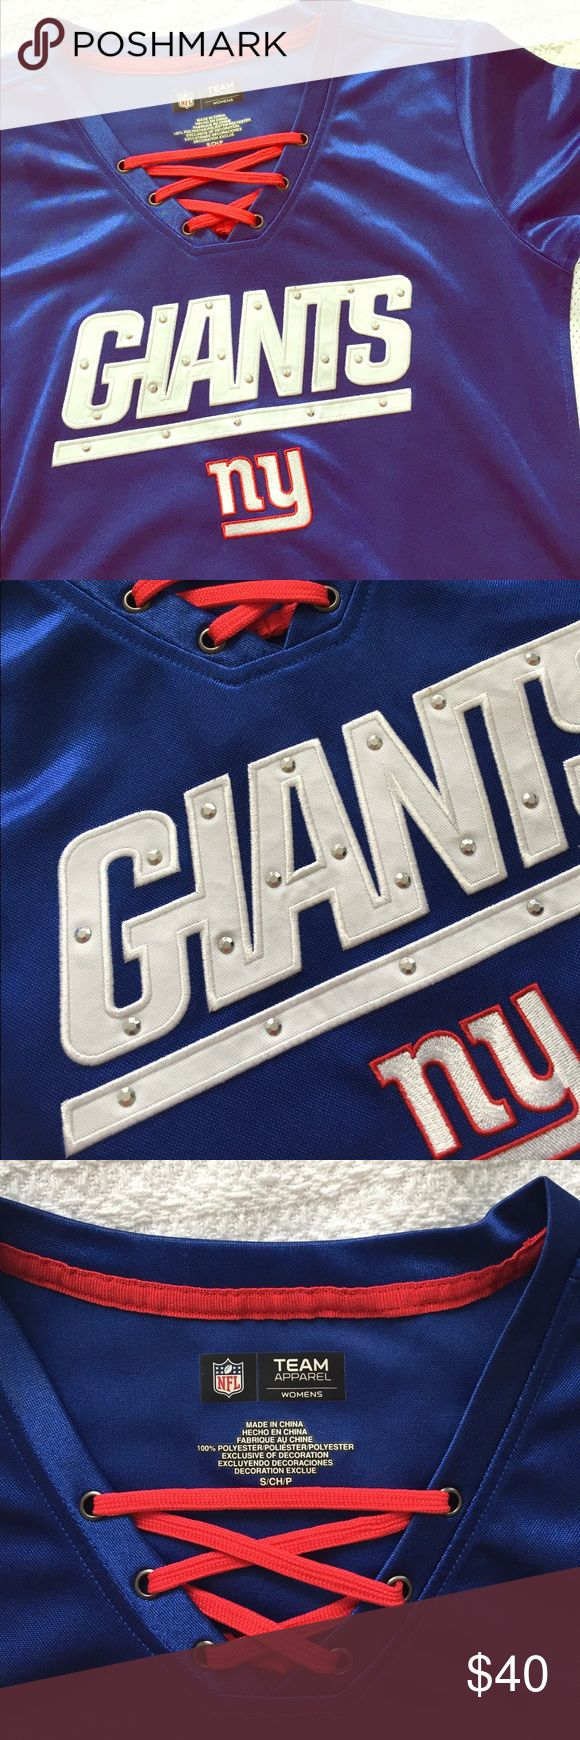 Girls Giants jersey Original NFL team apparel women line jersey. Worn once. Perfect condition. So cute with beads ❤️ NFL Tops Tees - Short Sleeve